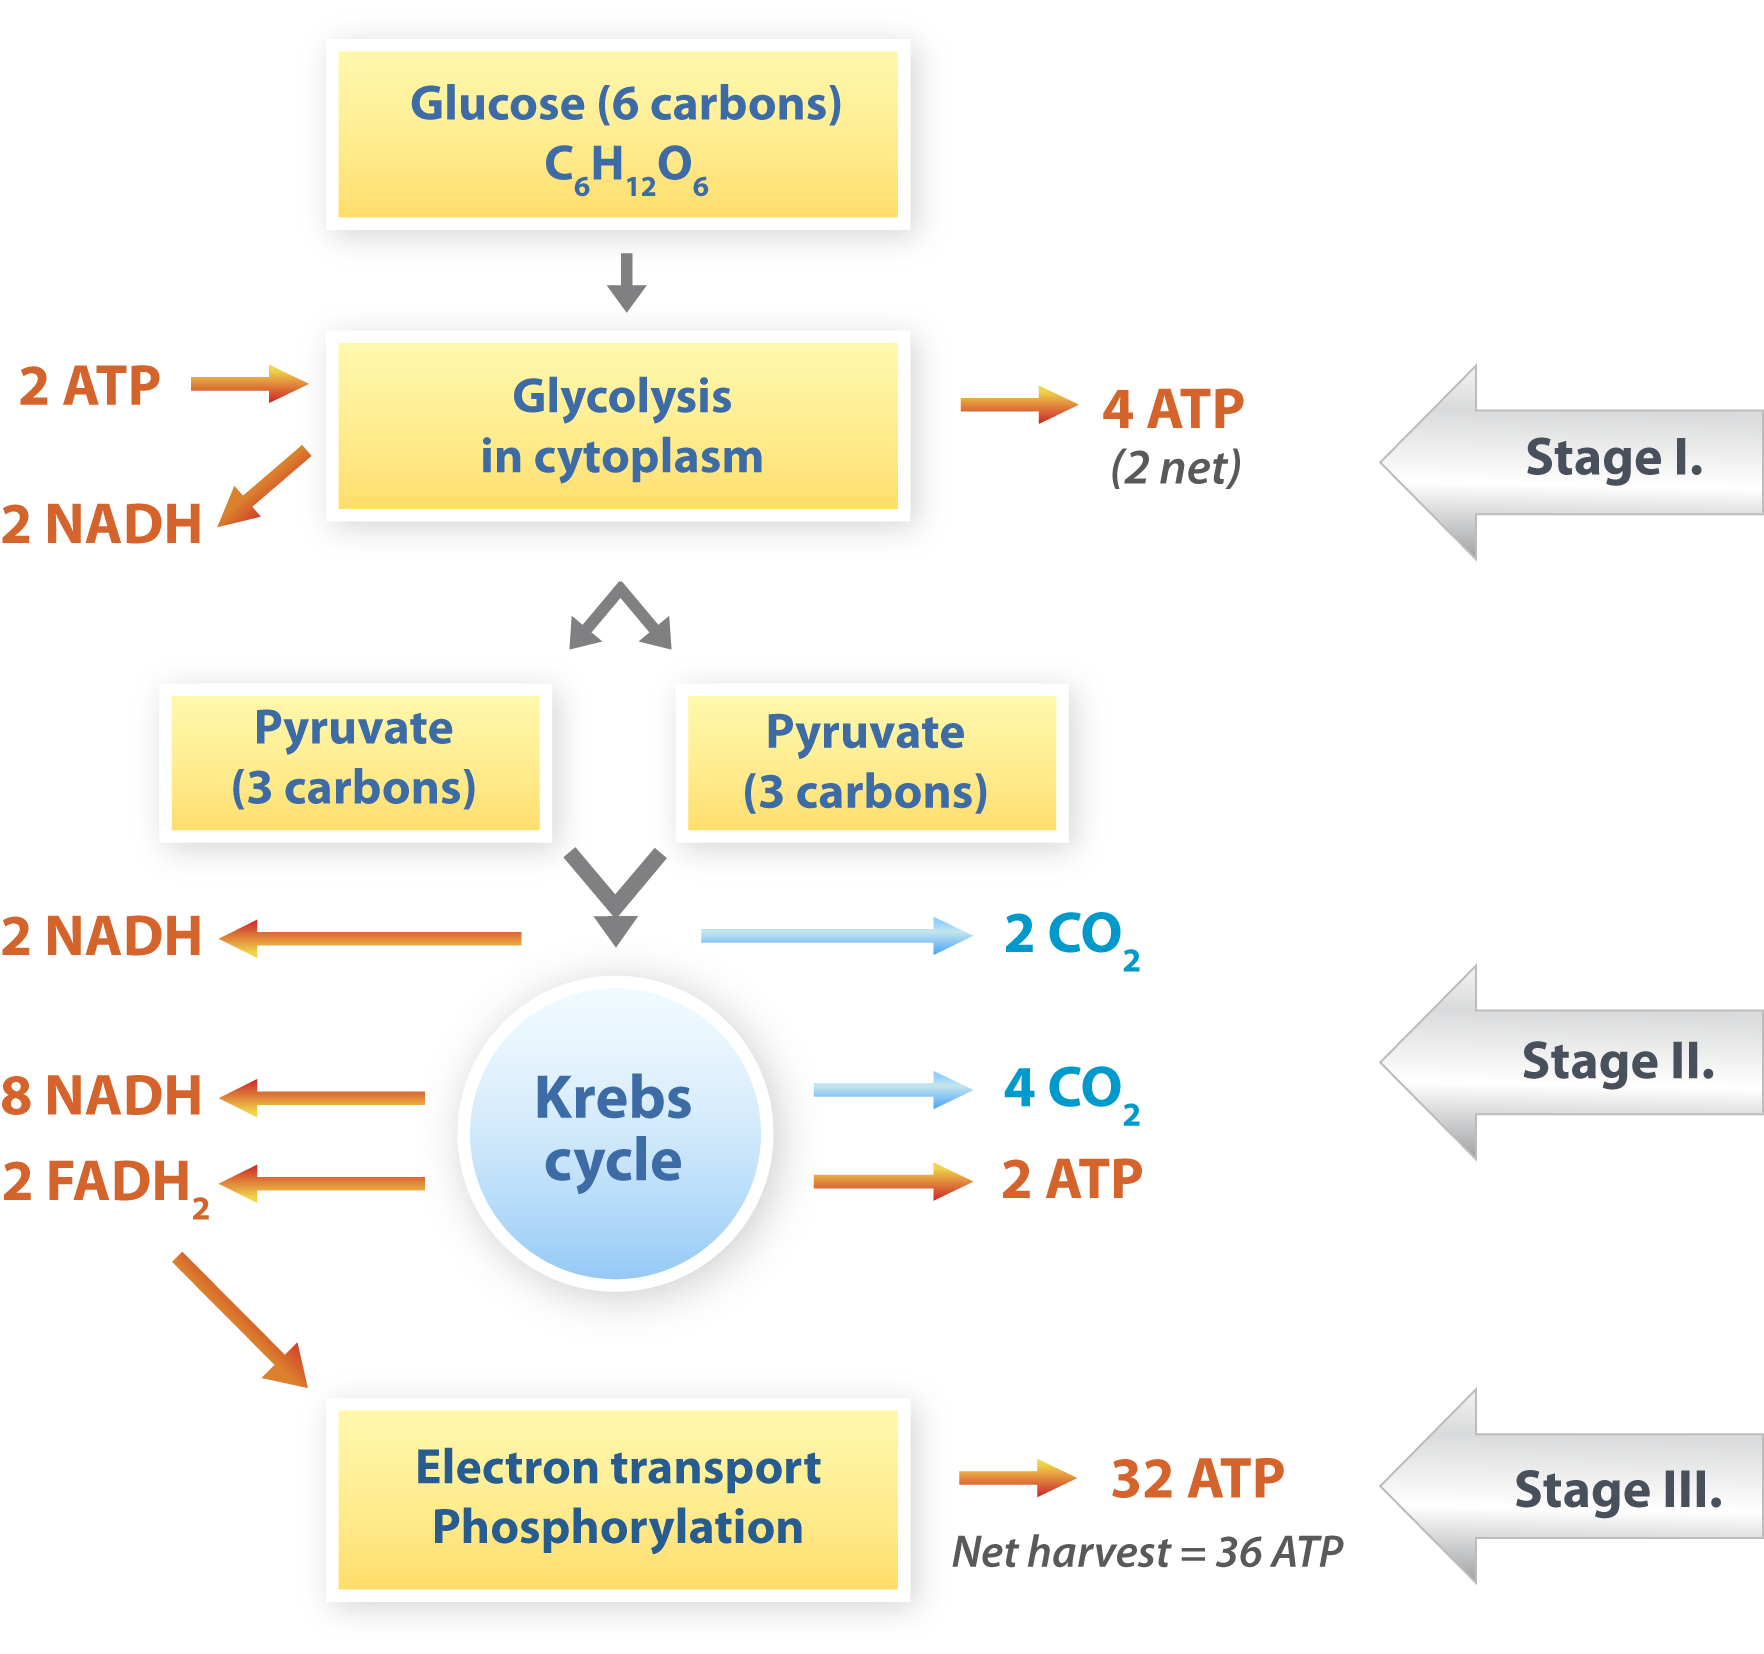 What are the coorrect order of steps required for aerobic cellular respiration?